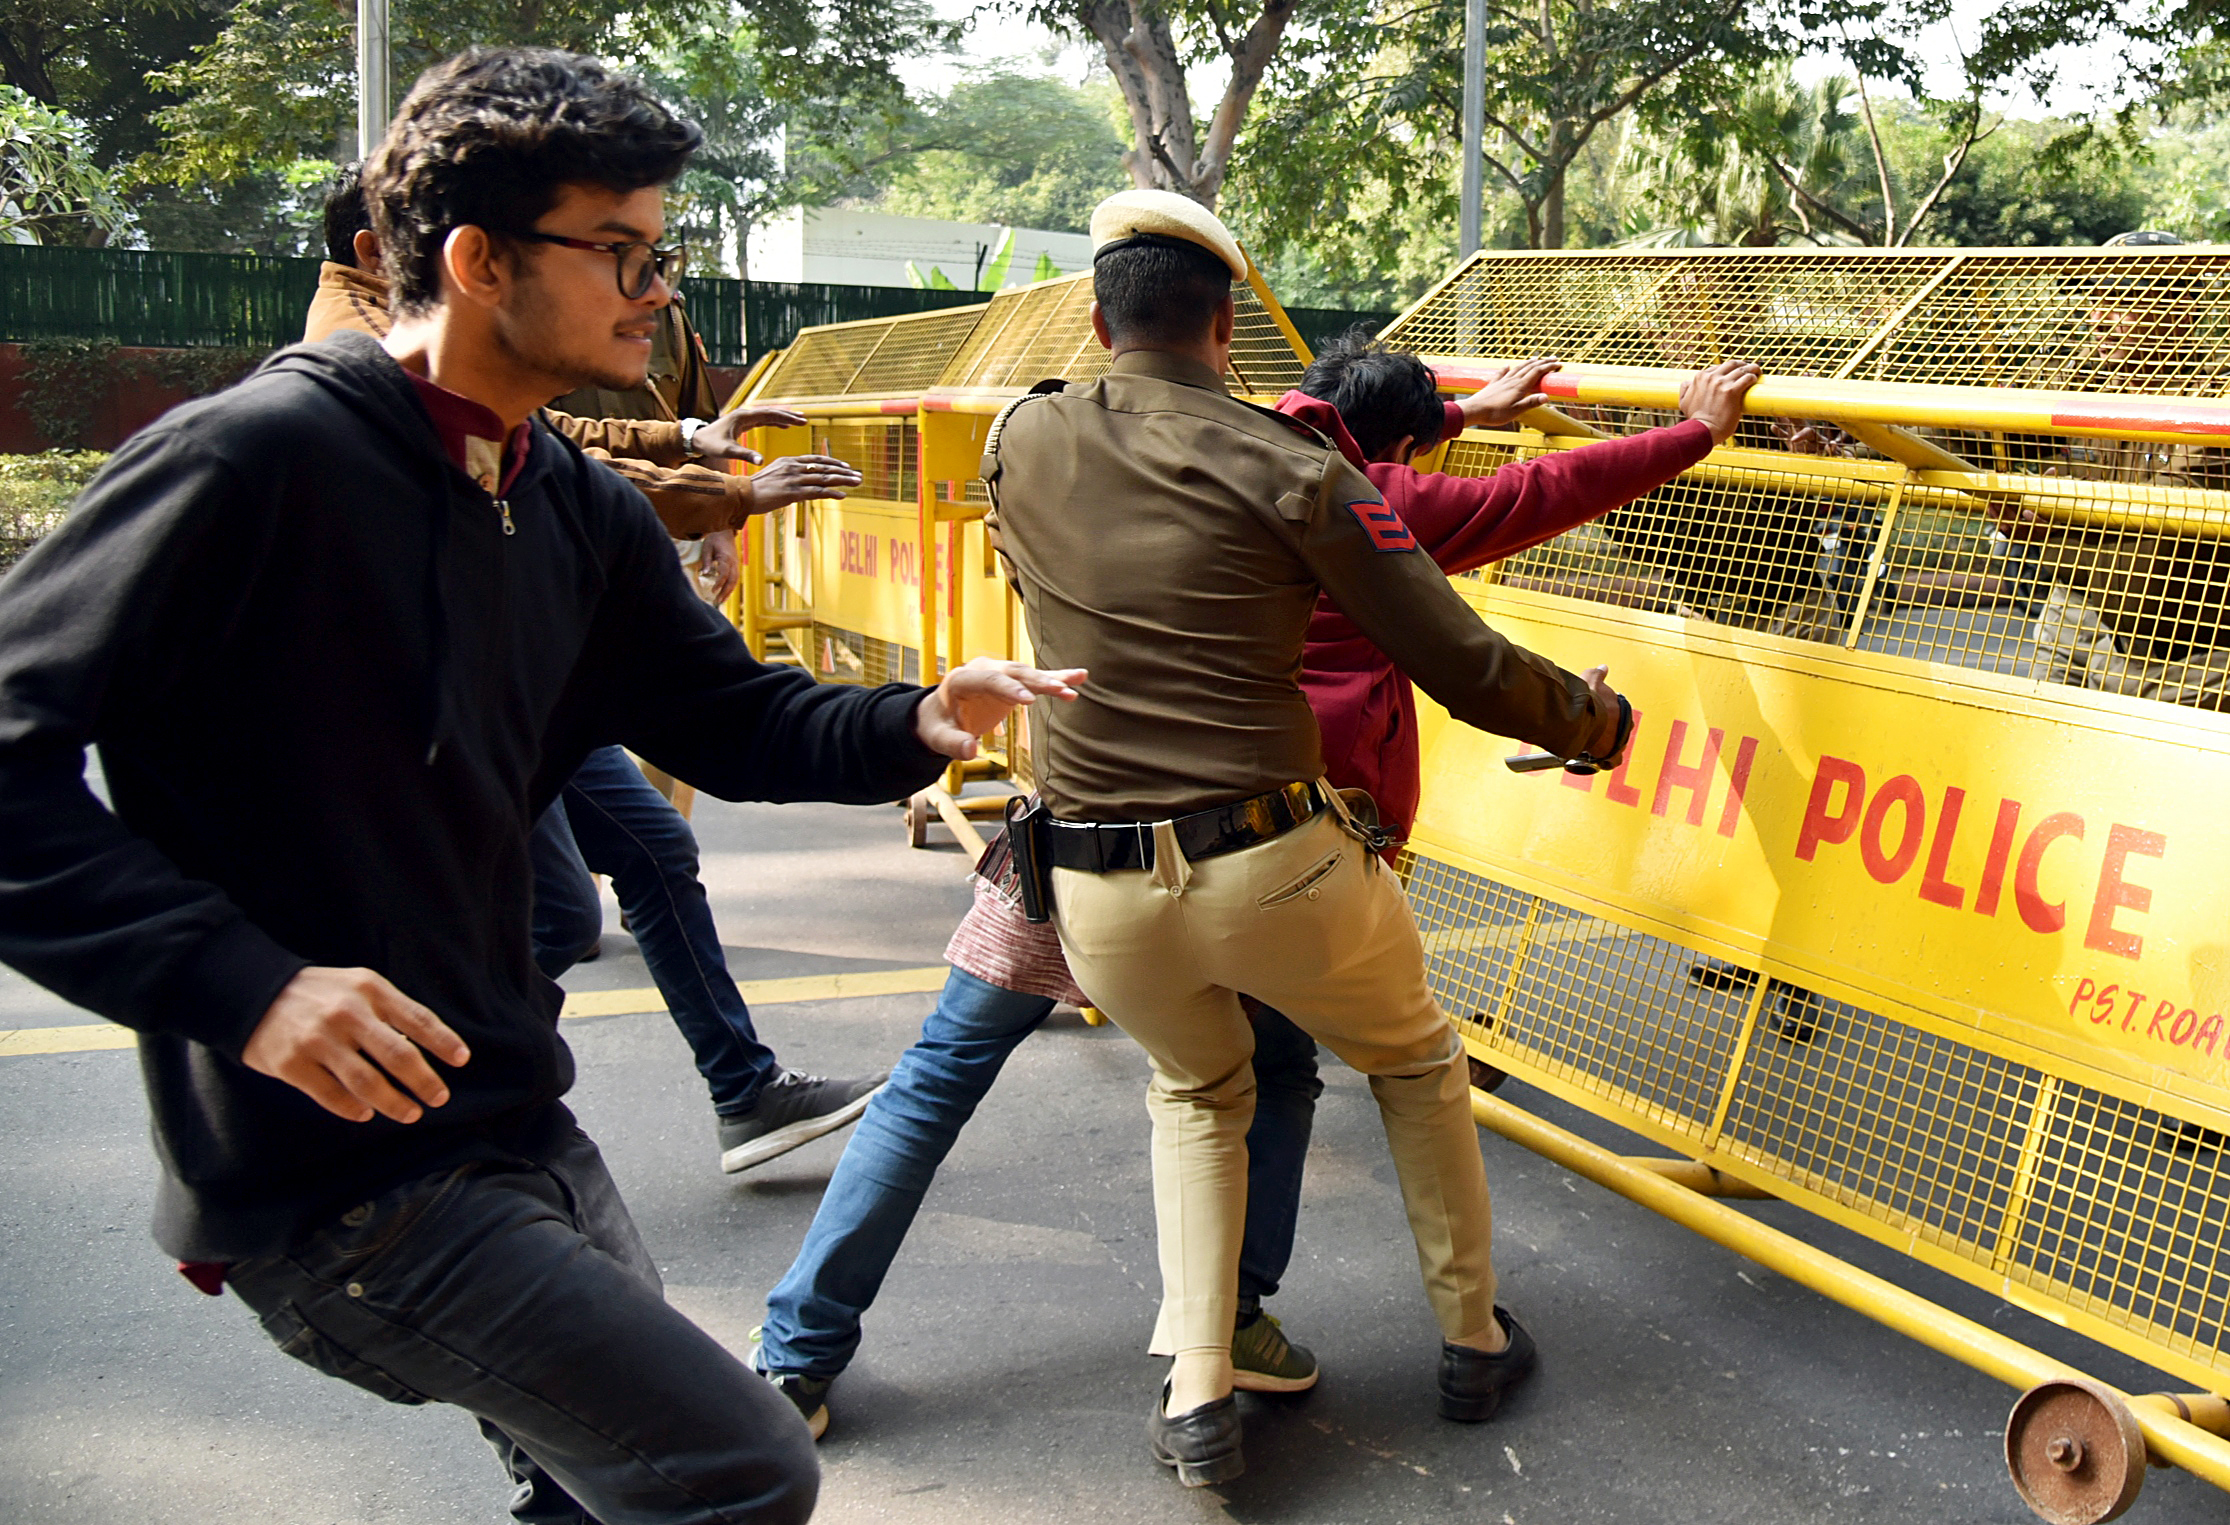 Cops stopped peaceful activists march: DCW